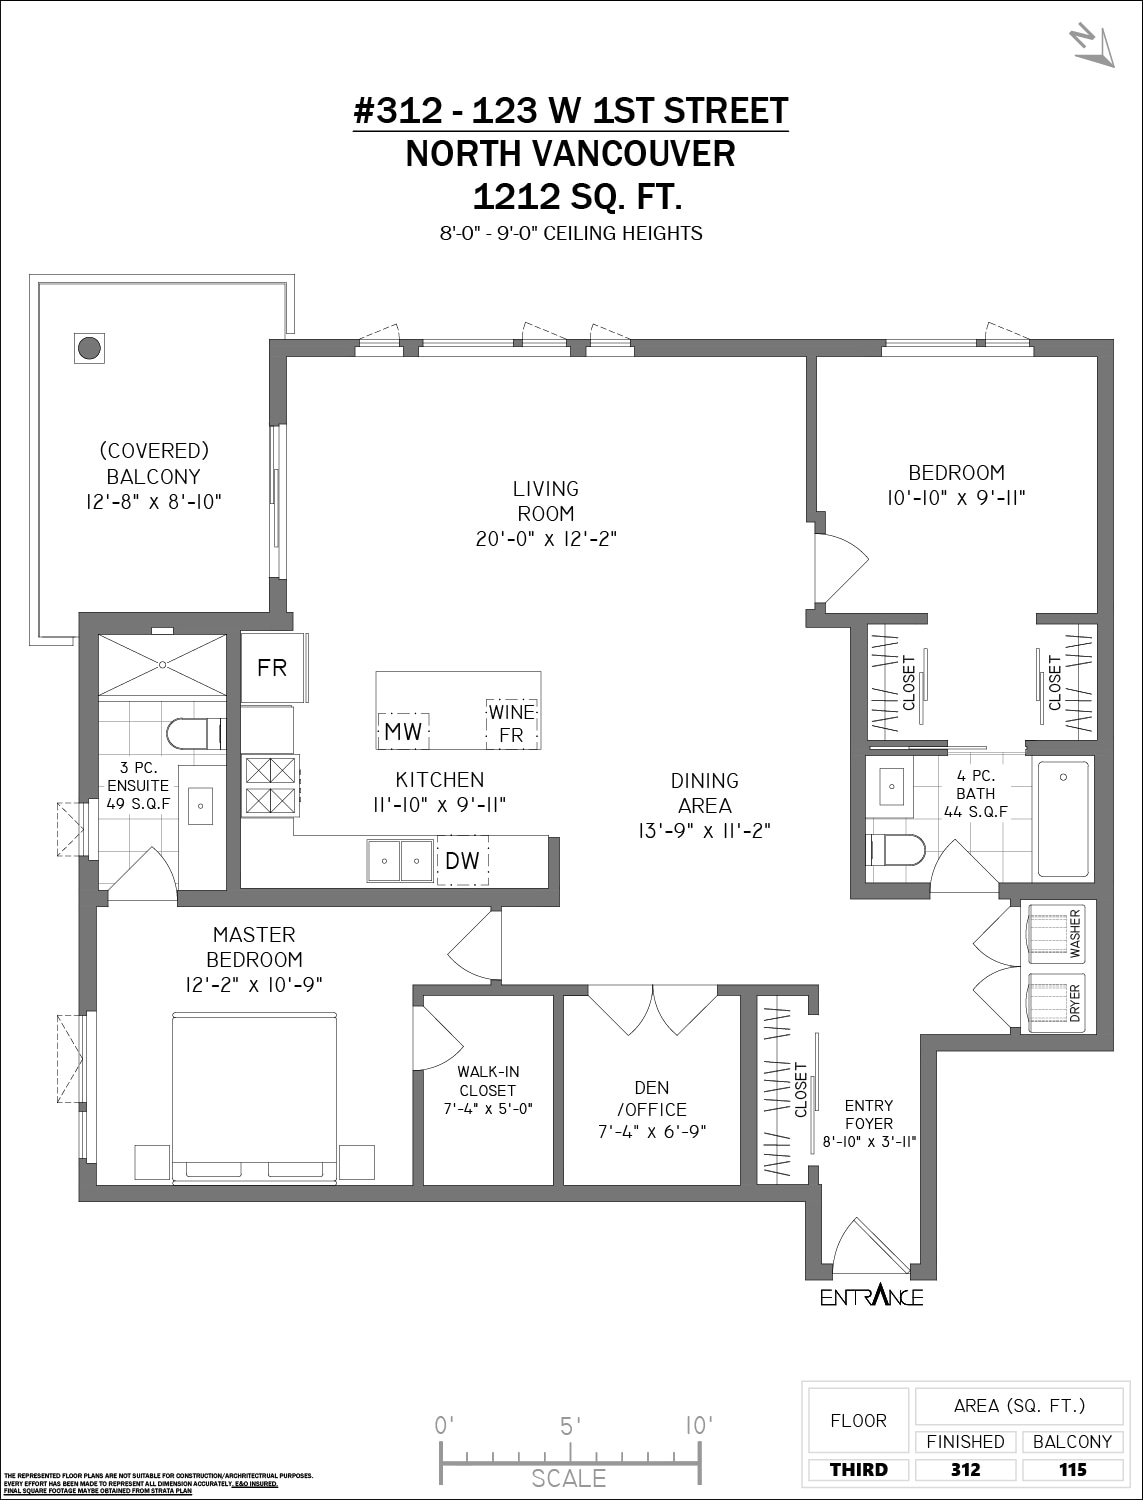 312 123 1st st w North Vancouver, BC - Floor Plan